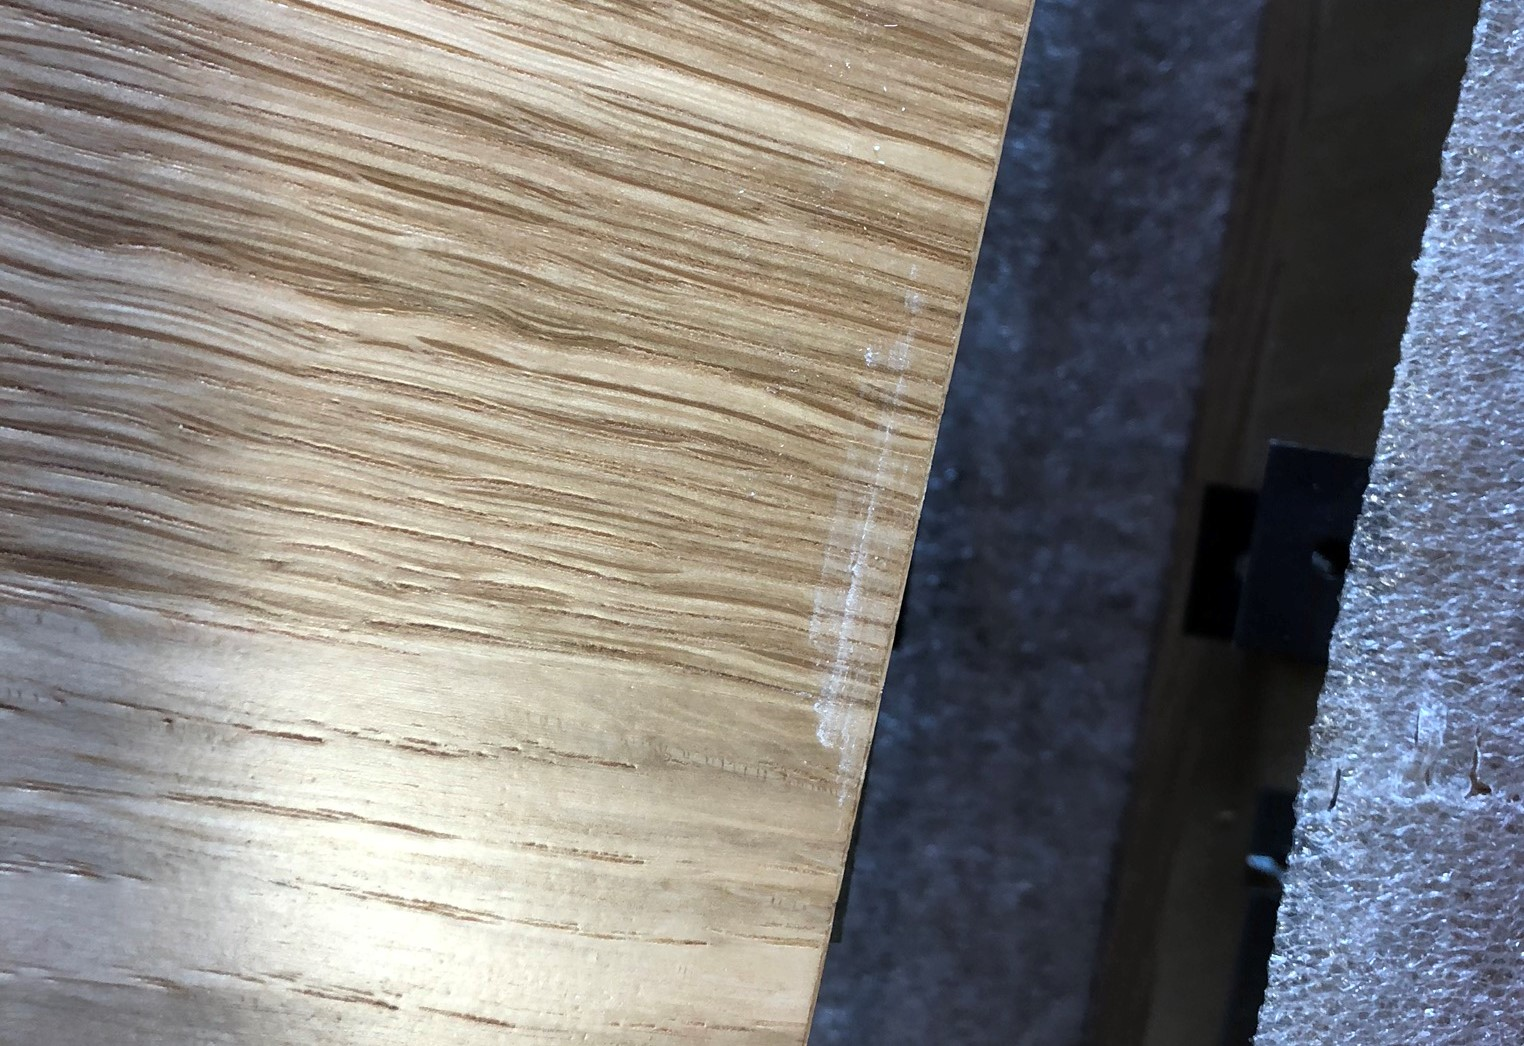 Scratches can appear on the face of tiles or other wood ceiling products during handling at the jobsite.